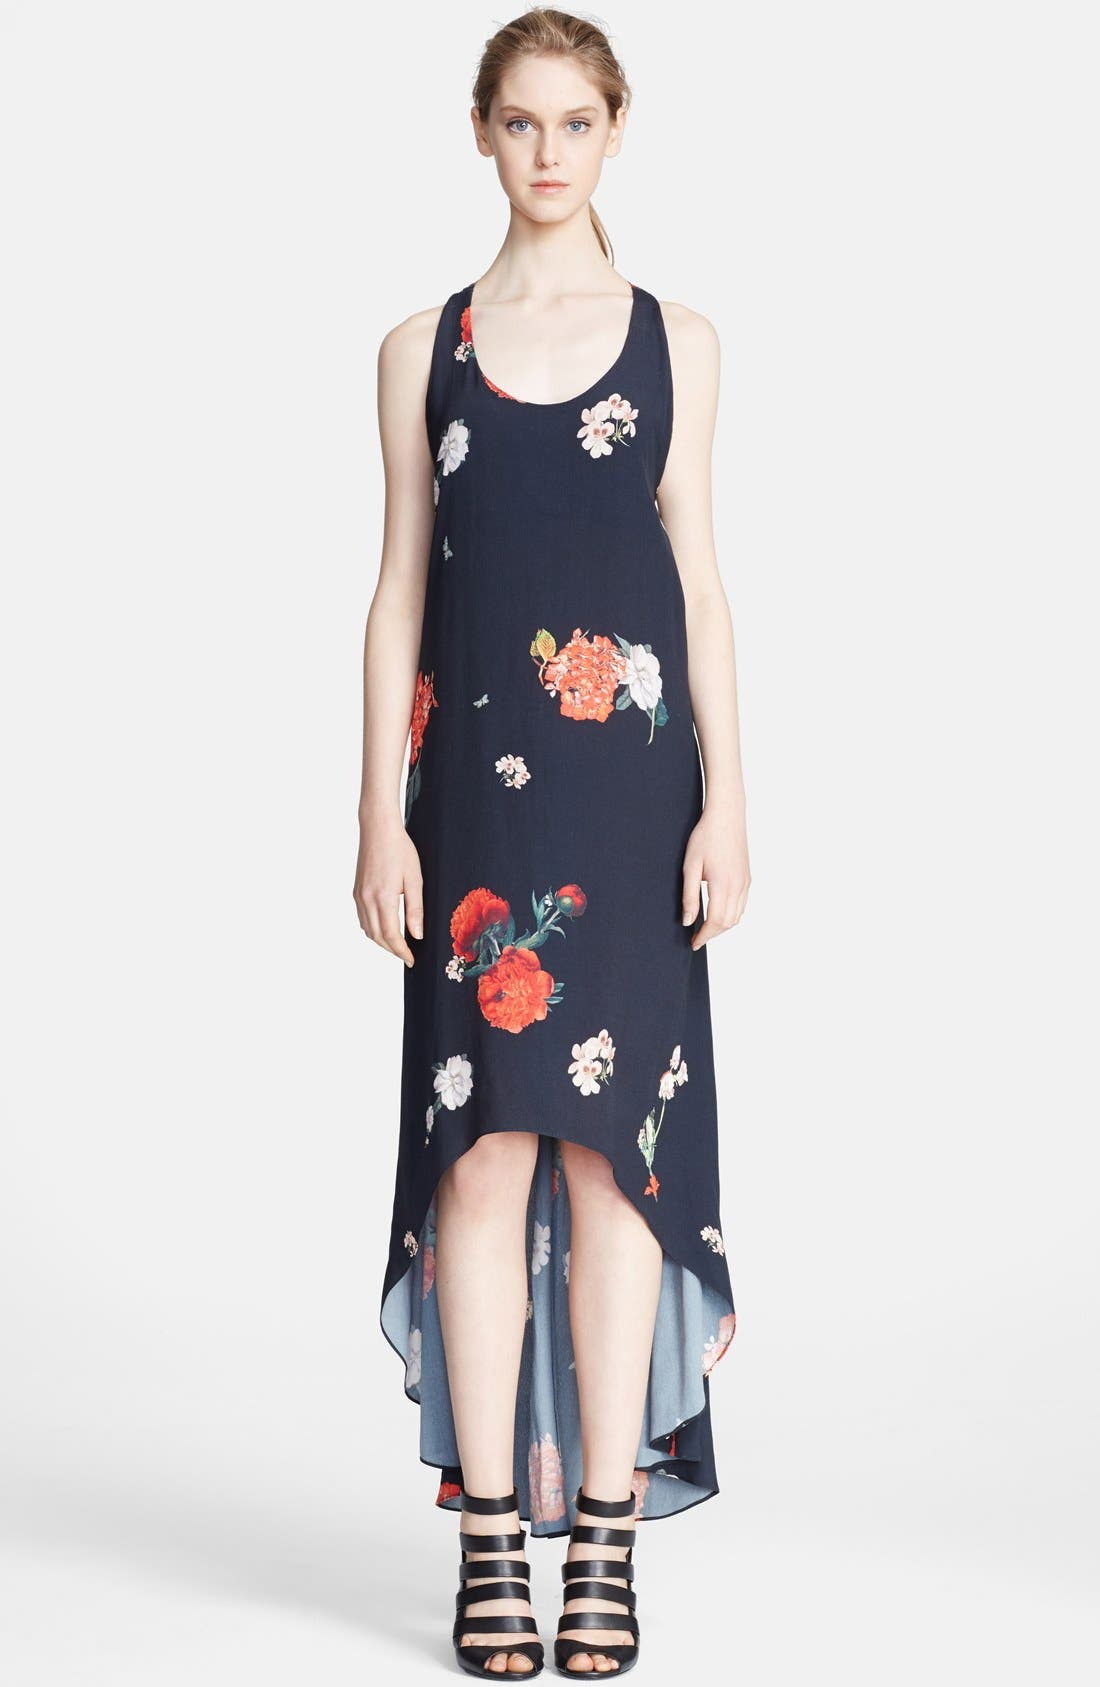 Alternate Image 1 Selected - Alice + Olivia 'Veronica' Floral Print High/Low Dress